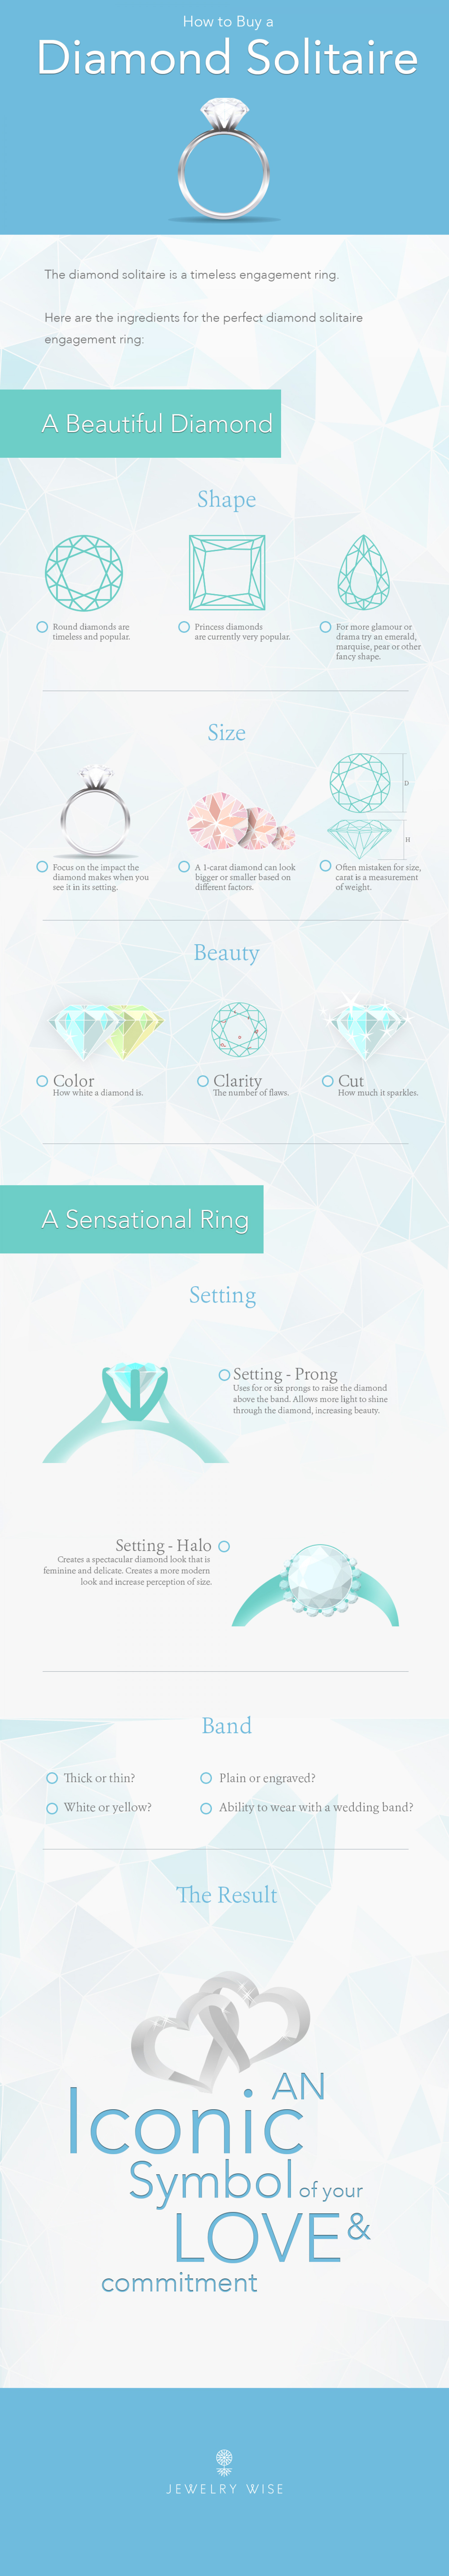 How to Choose a Solitaire Ring Infographic